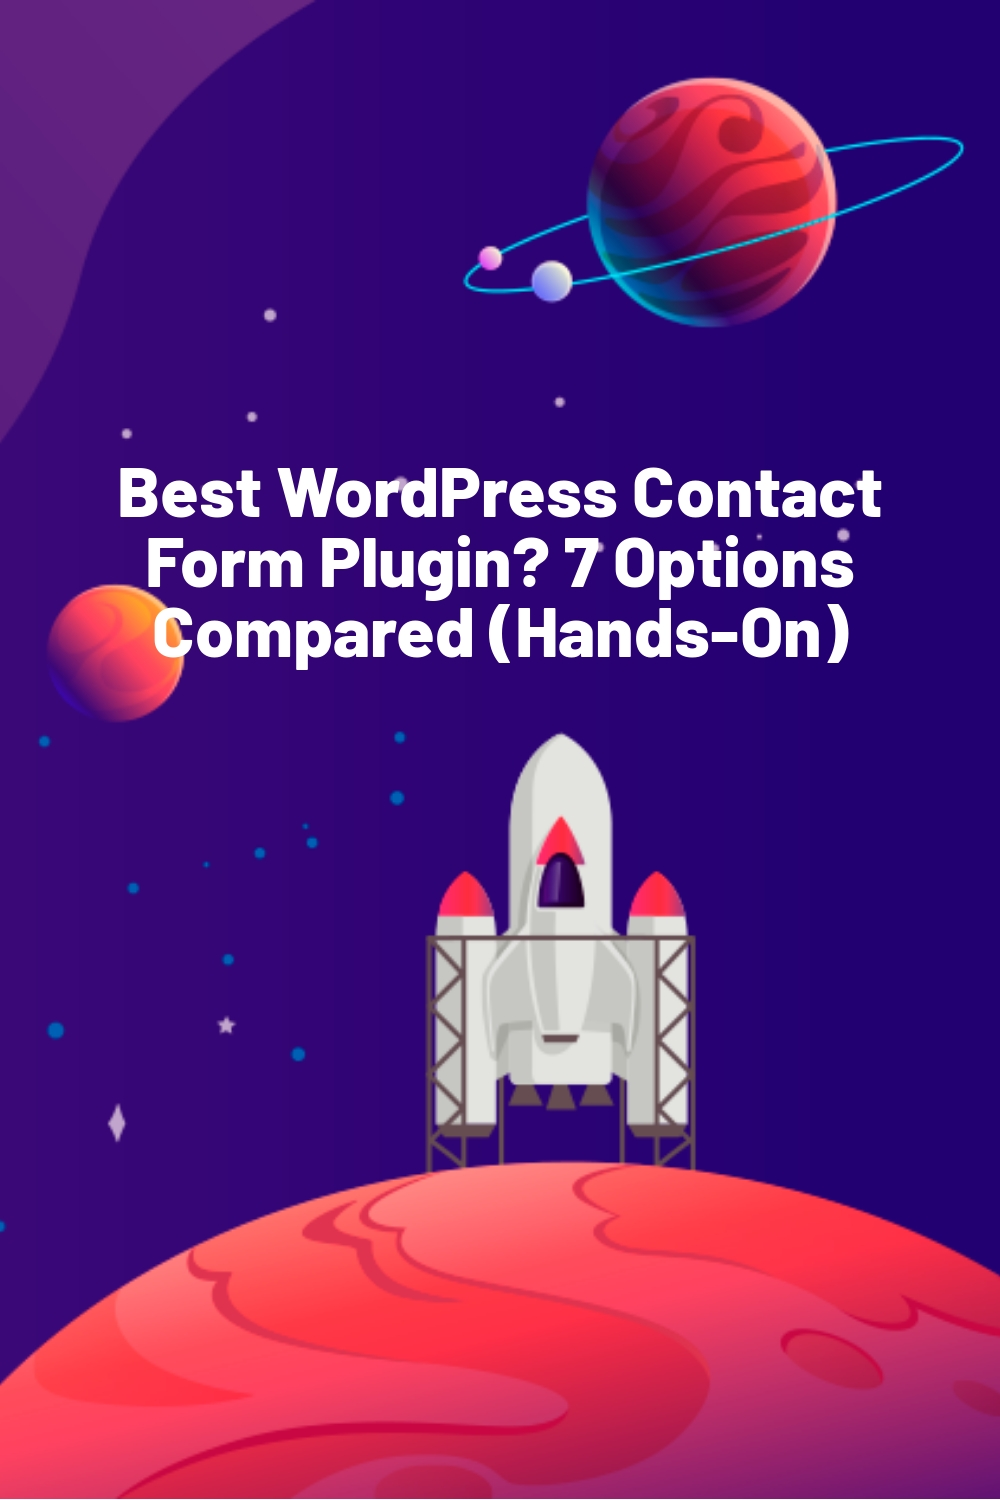 Best WordPress Contact Form Plugin? 7 Options Compared (Hands-On)